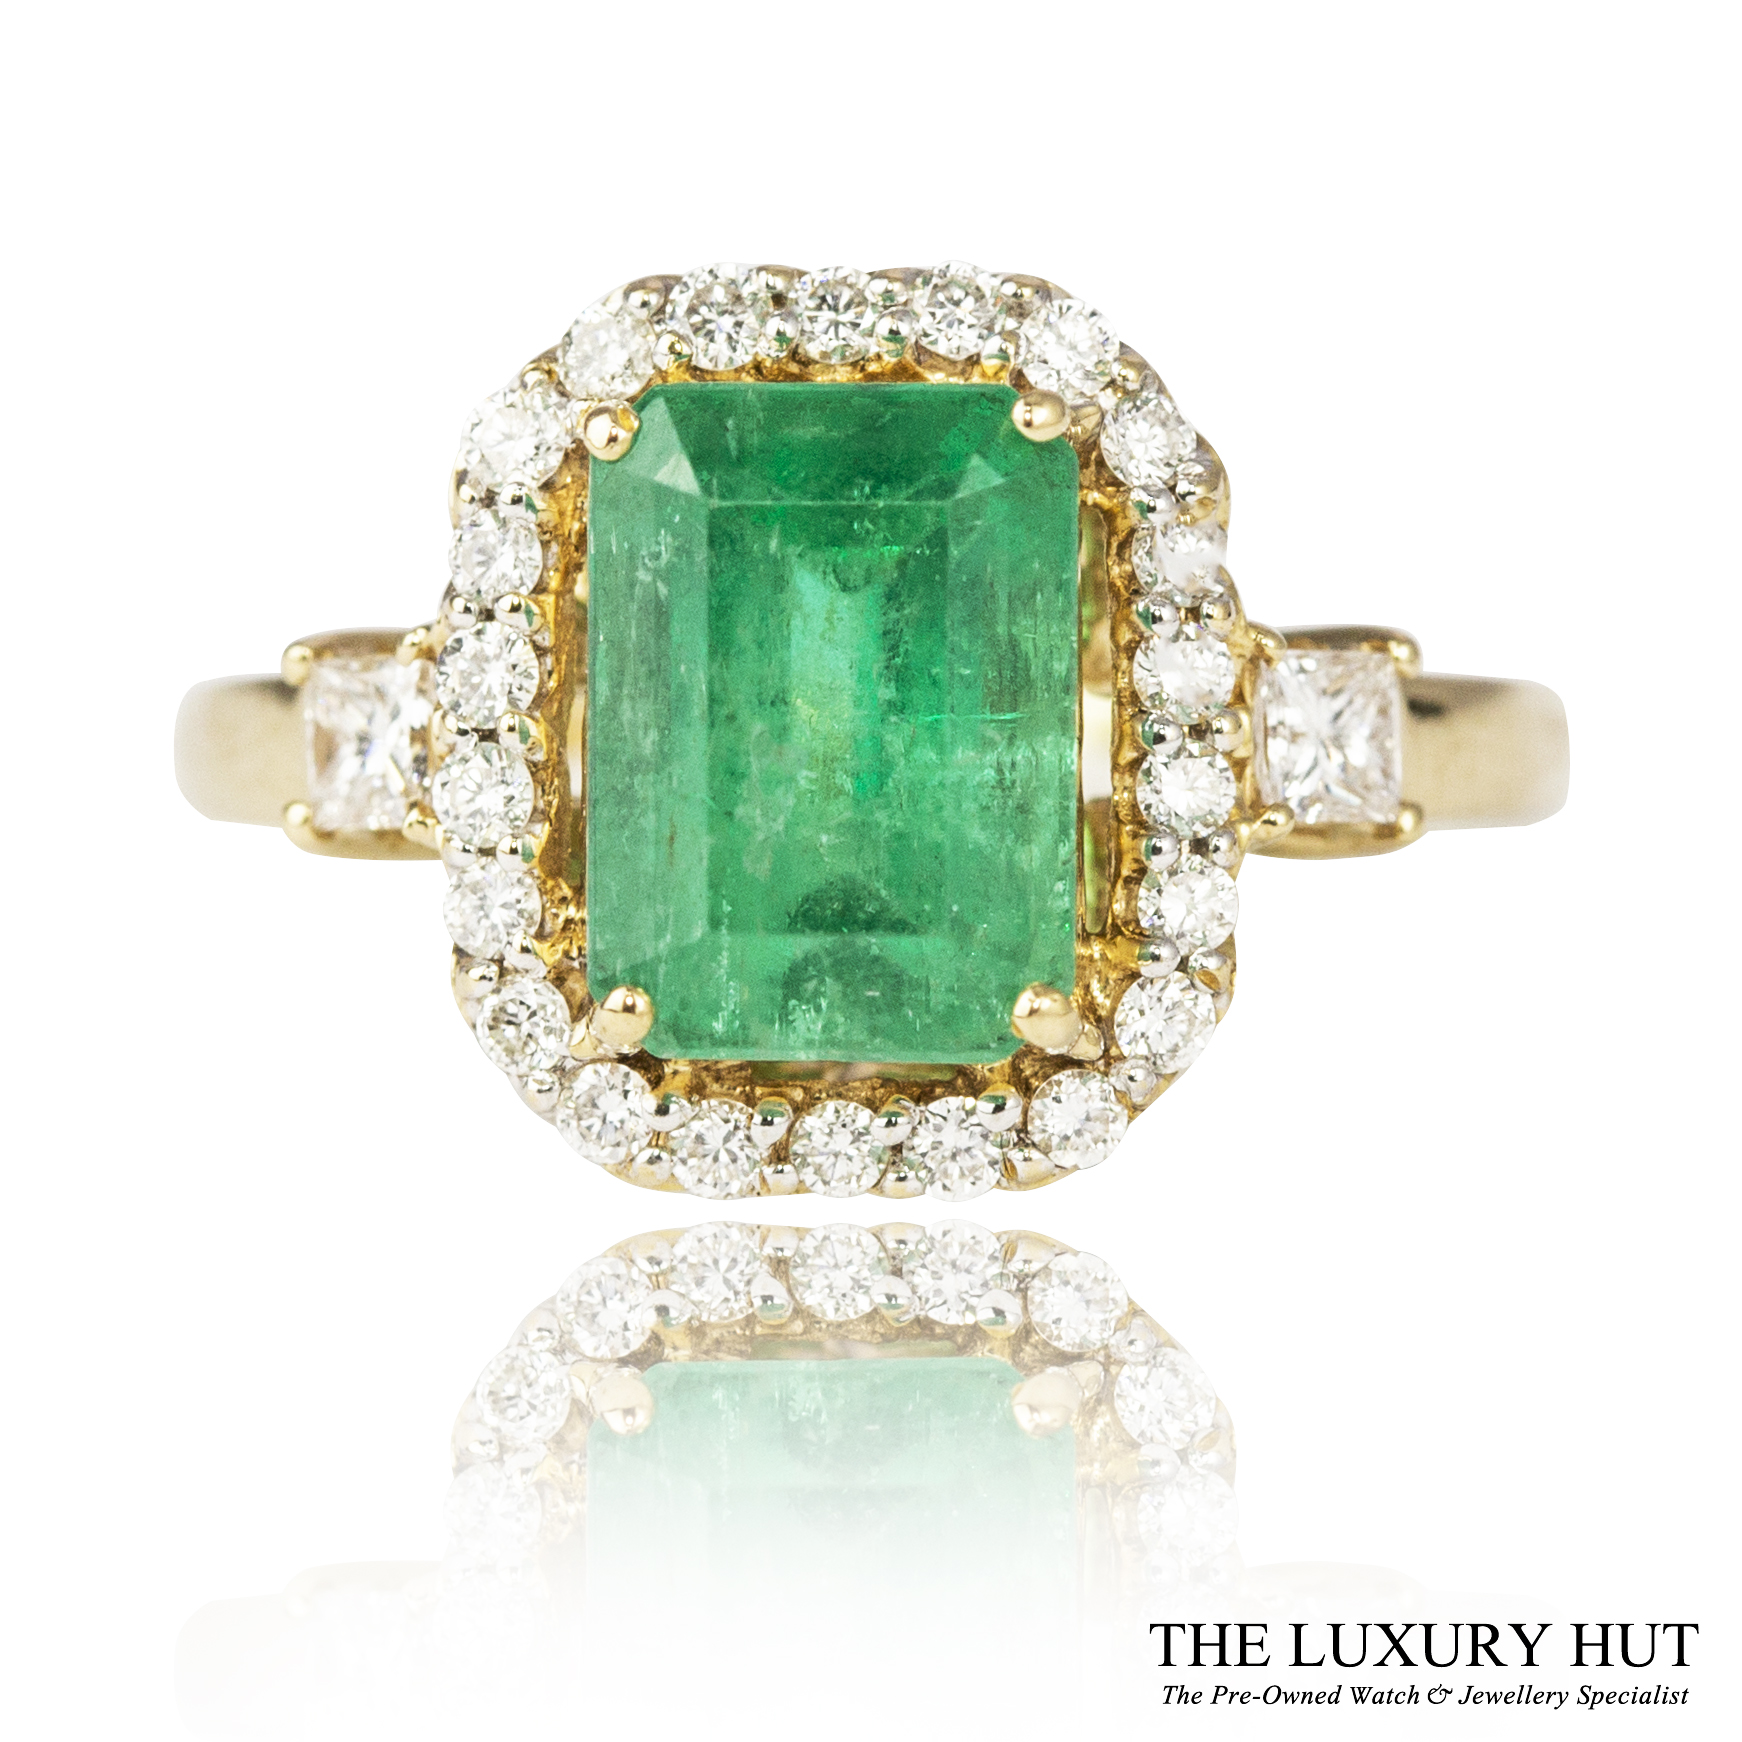 6b0f6085f Details about 18CT GOLD 2.85CT CERTIFIED EMERALD & DIAMOND ENGAGEMENT RING